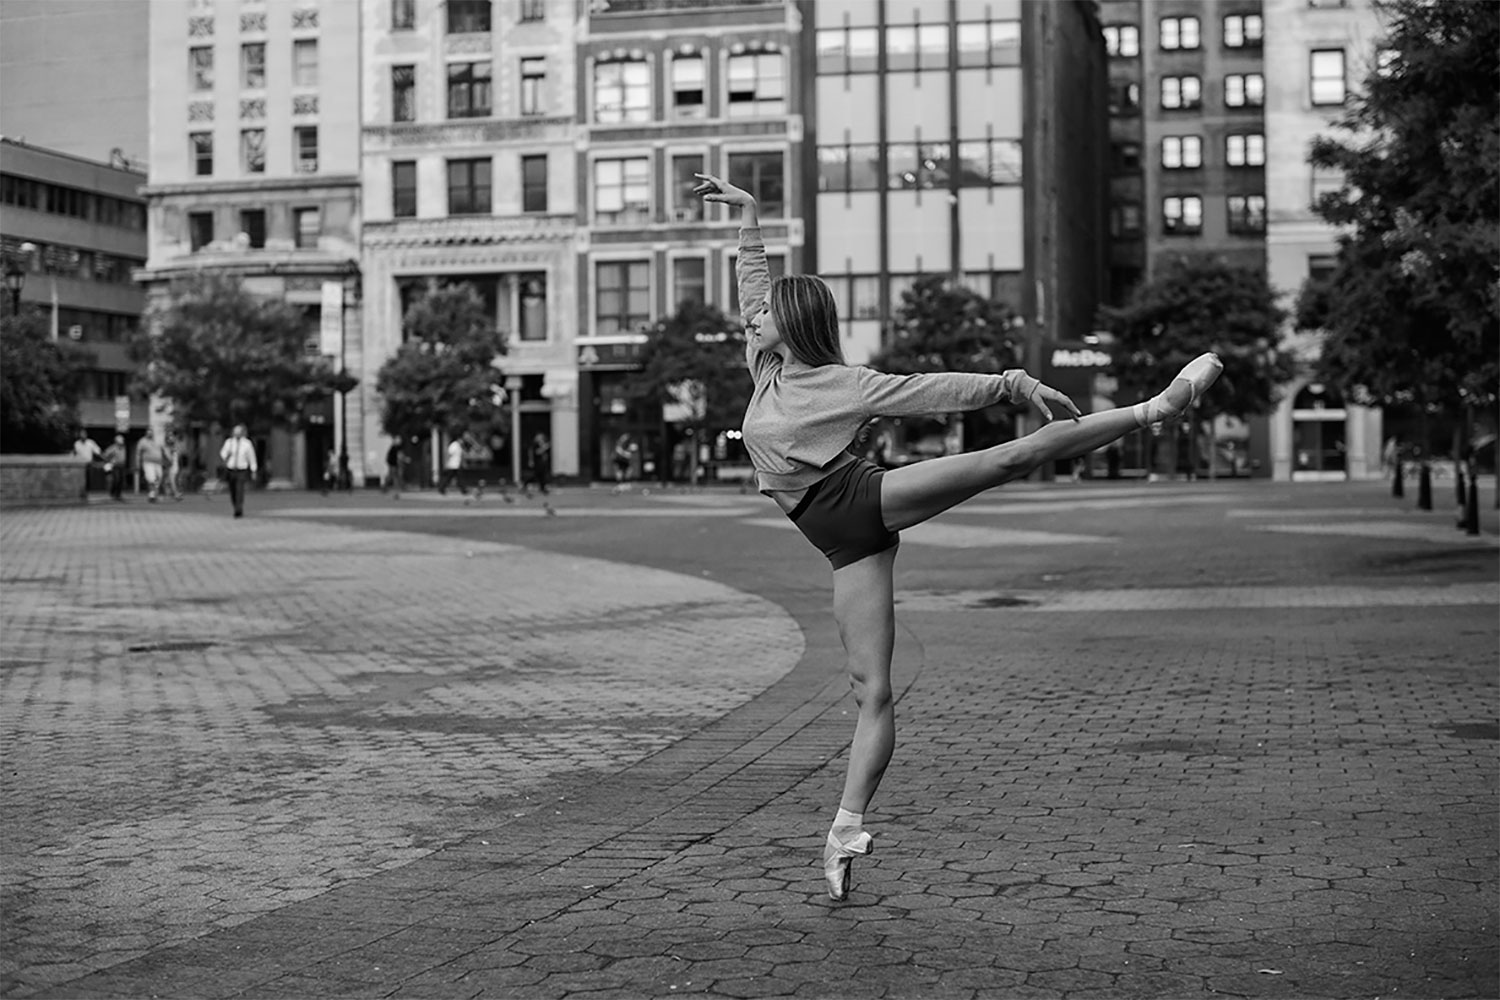 Ballerina Project - Isabella Boylston